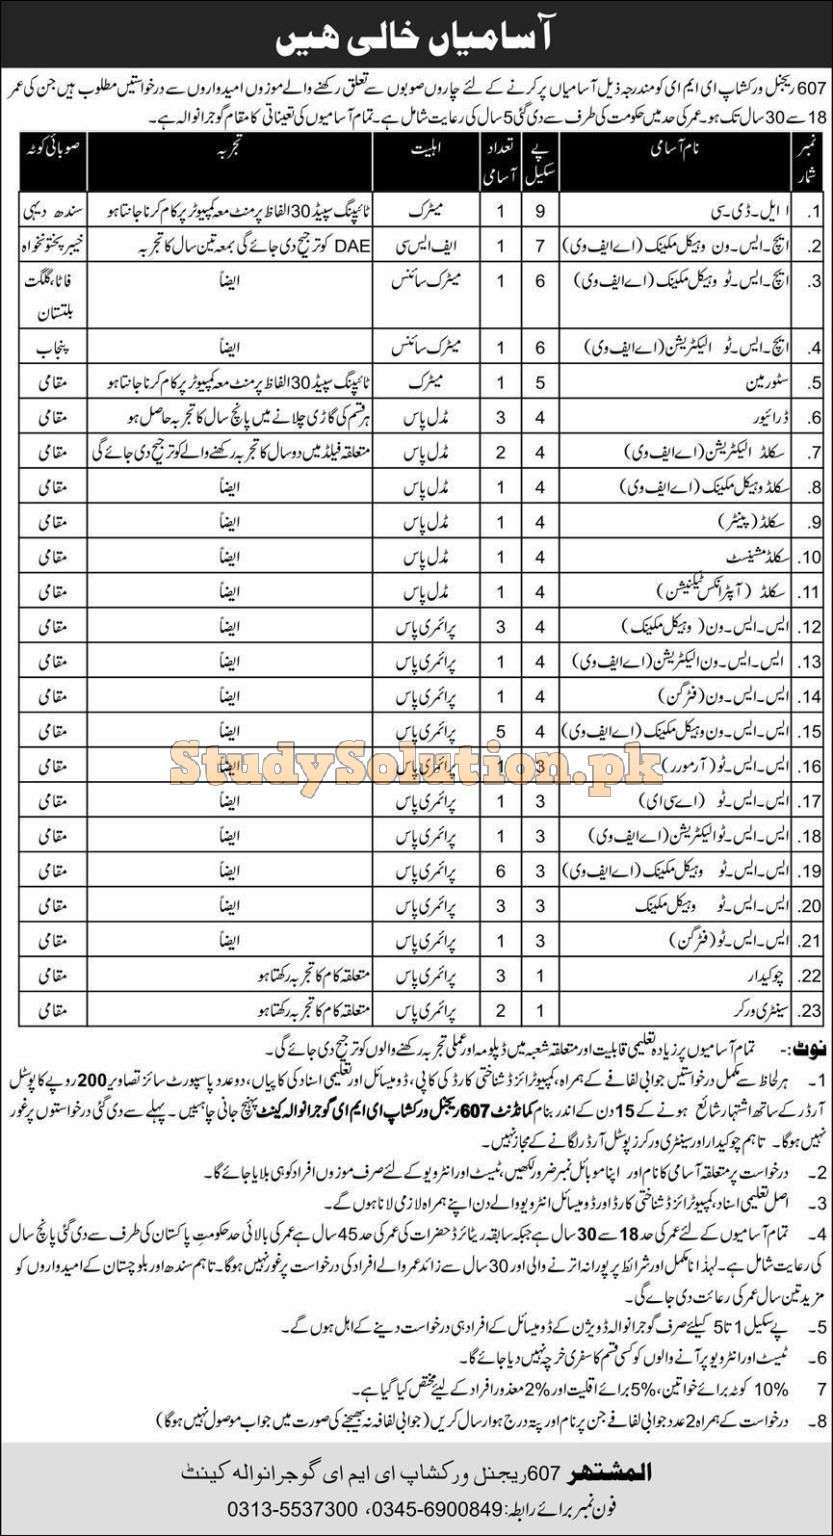 Pakistan Army 607 Regional Workshop EME Latest Jobs 2020